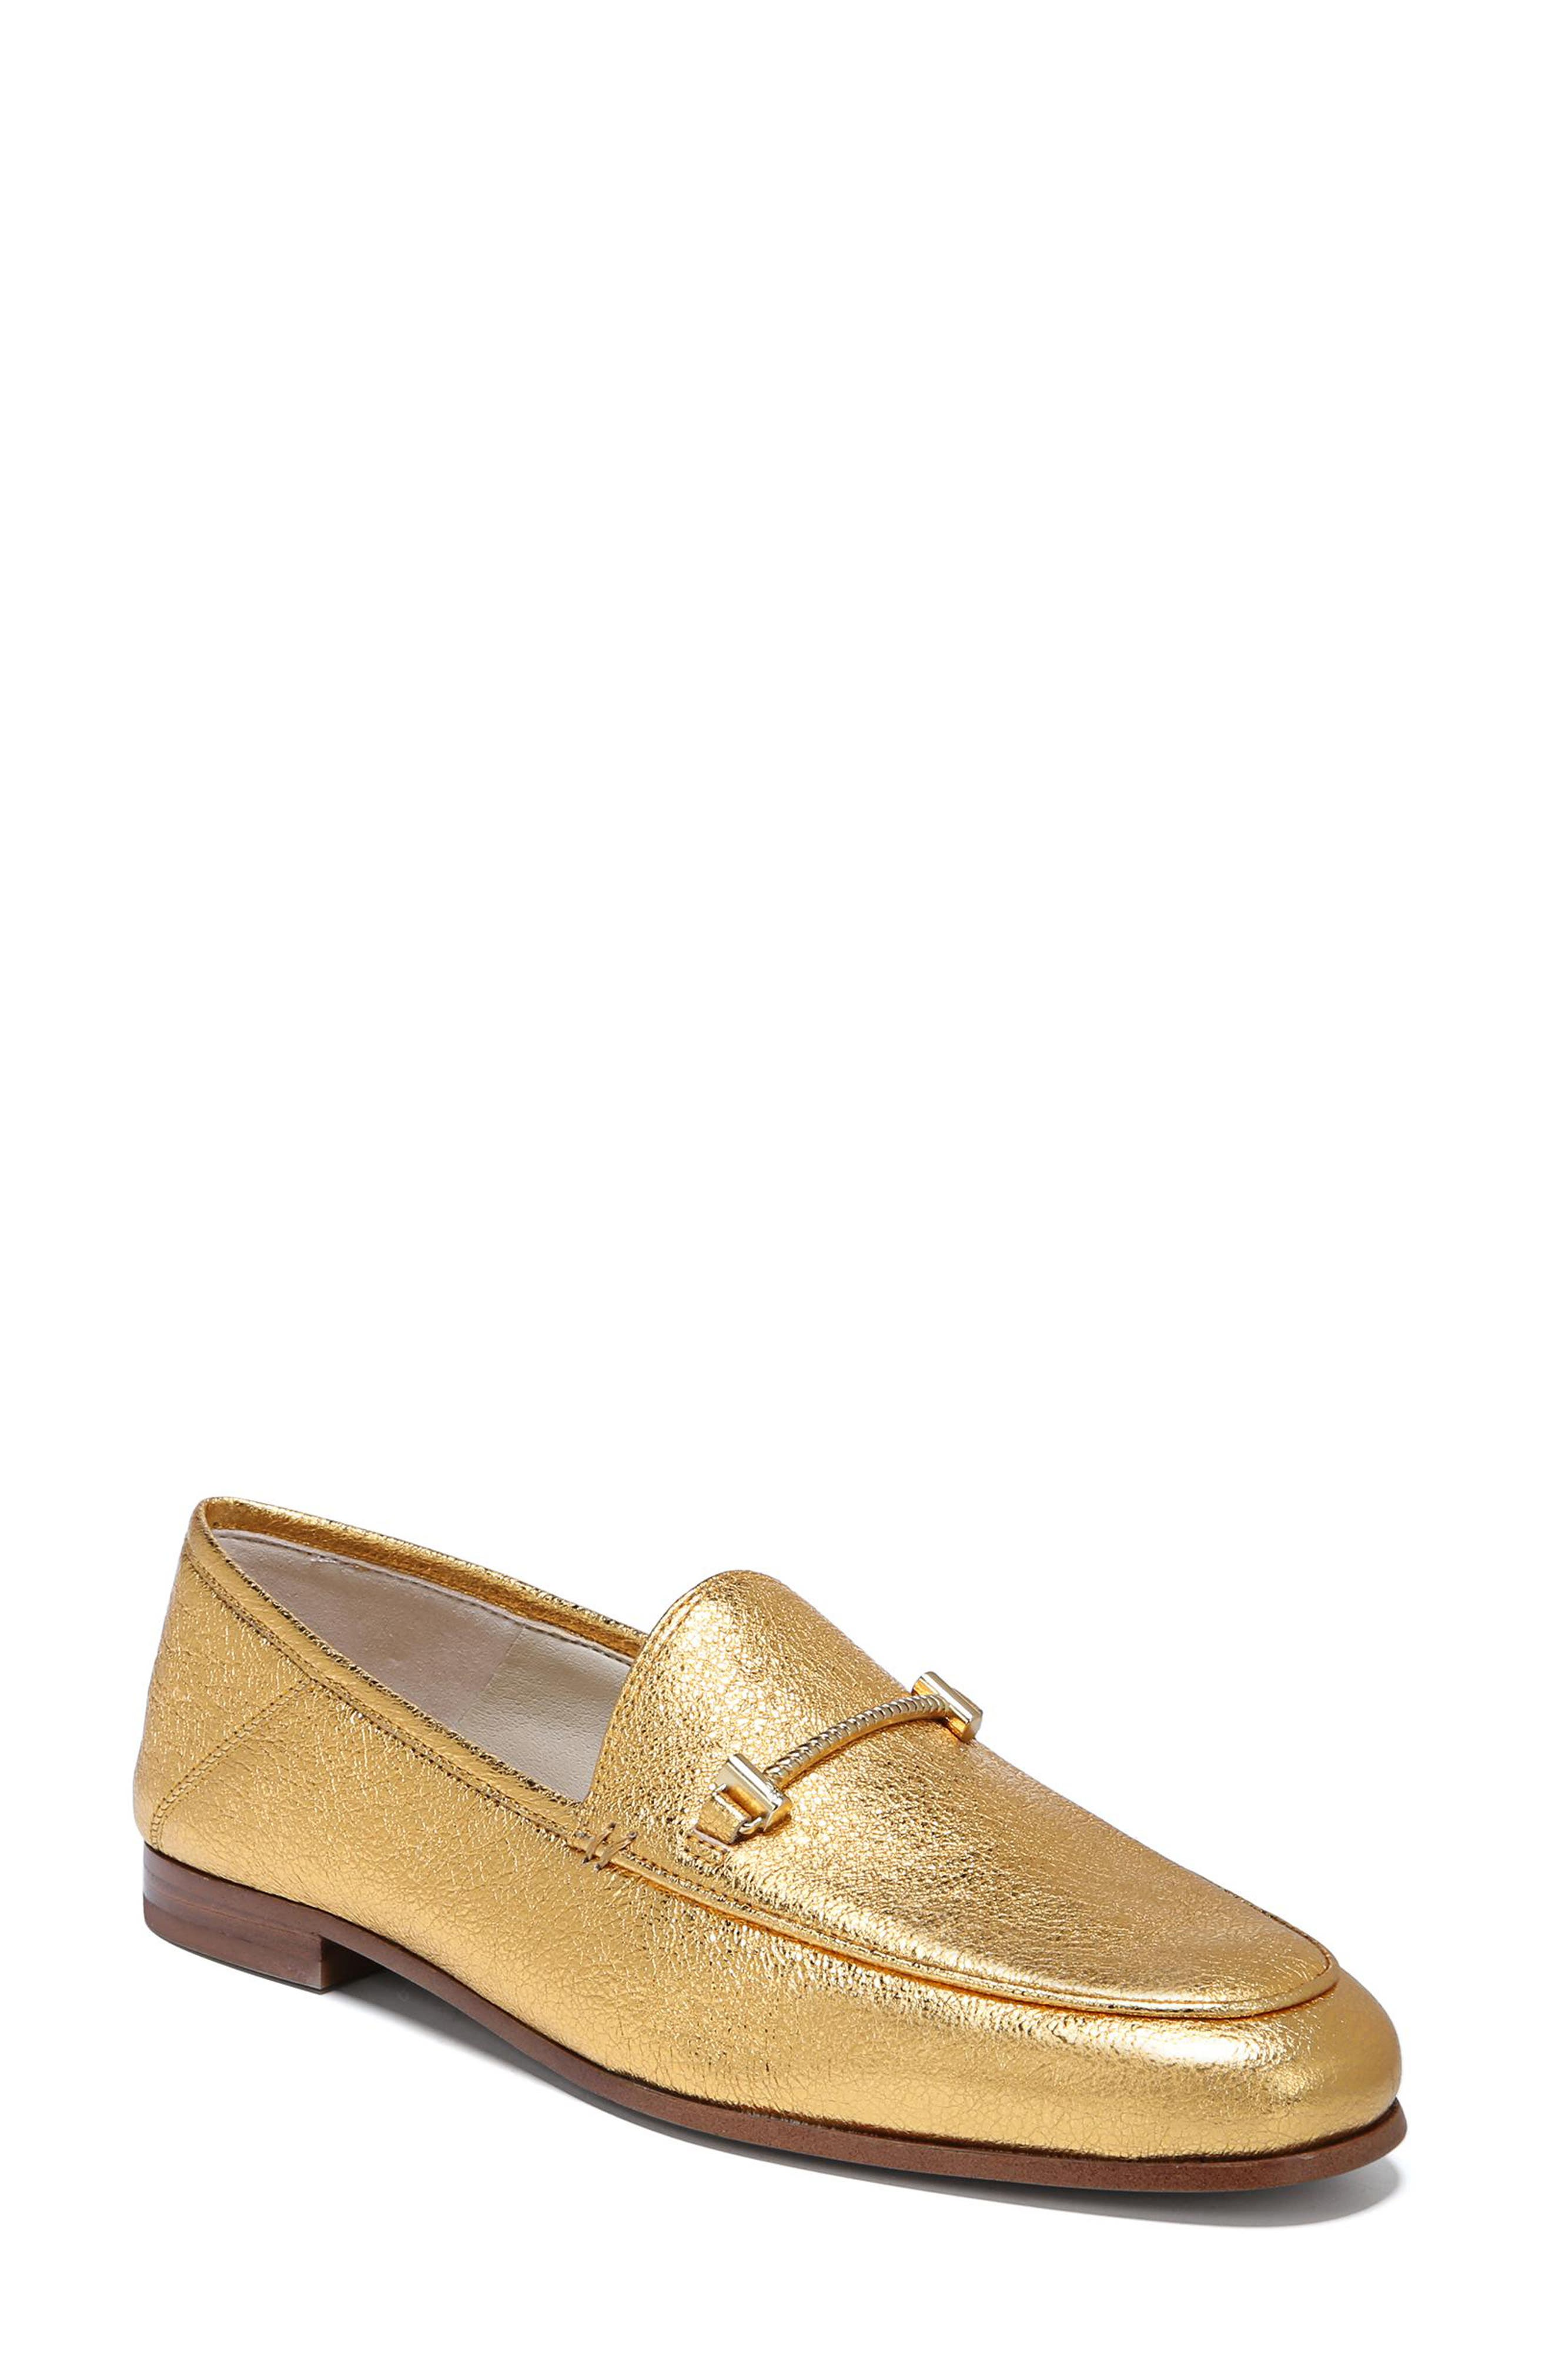 Lior Loafer,                         Main,                         color, Exotic Gold Leather